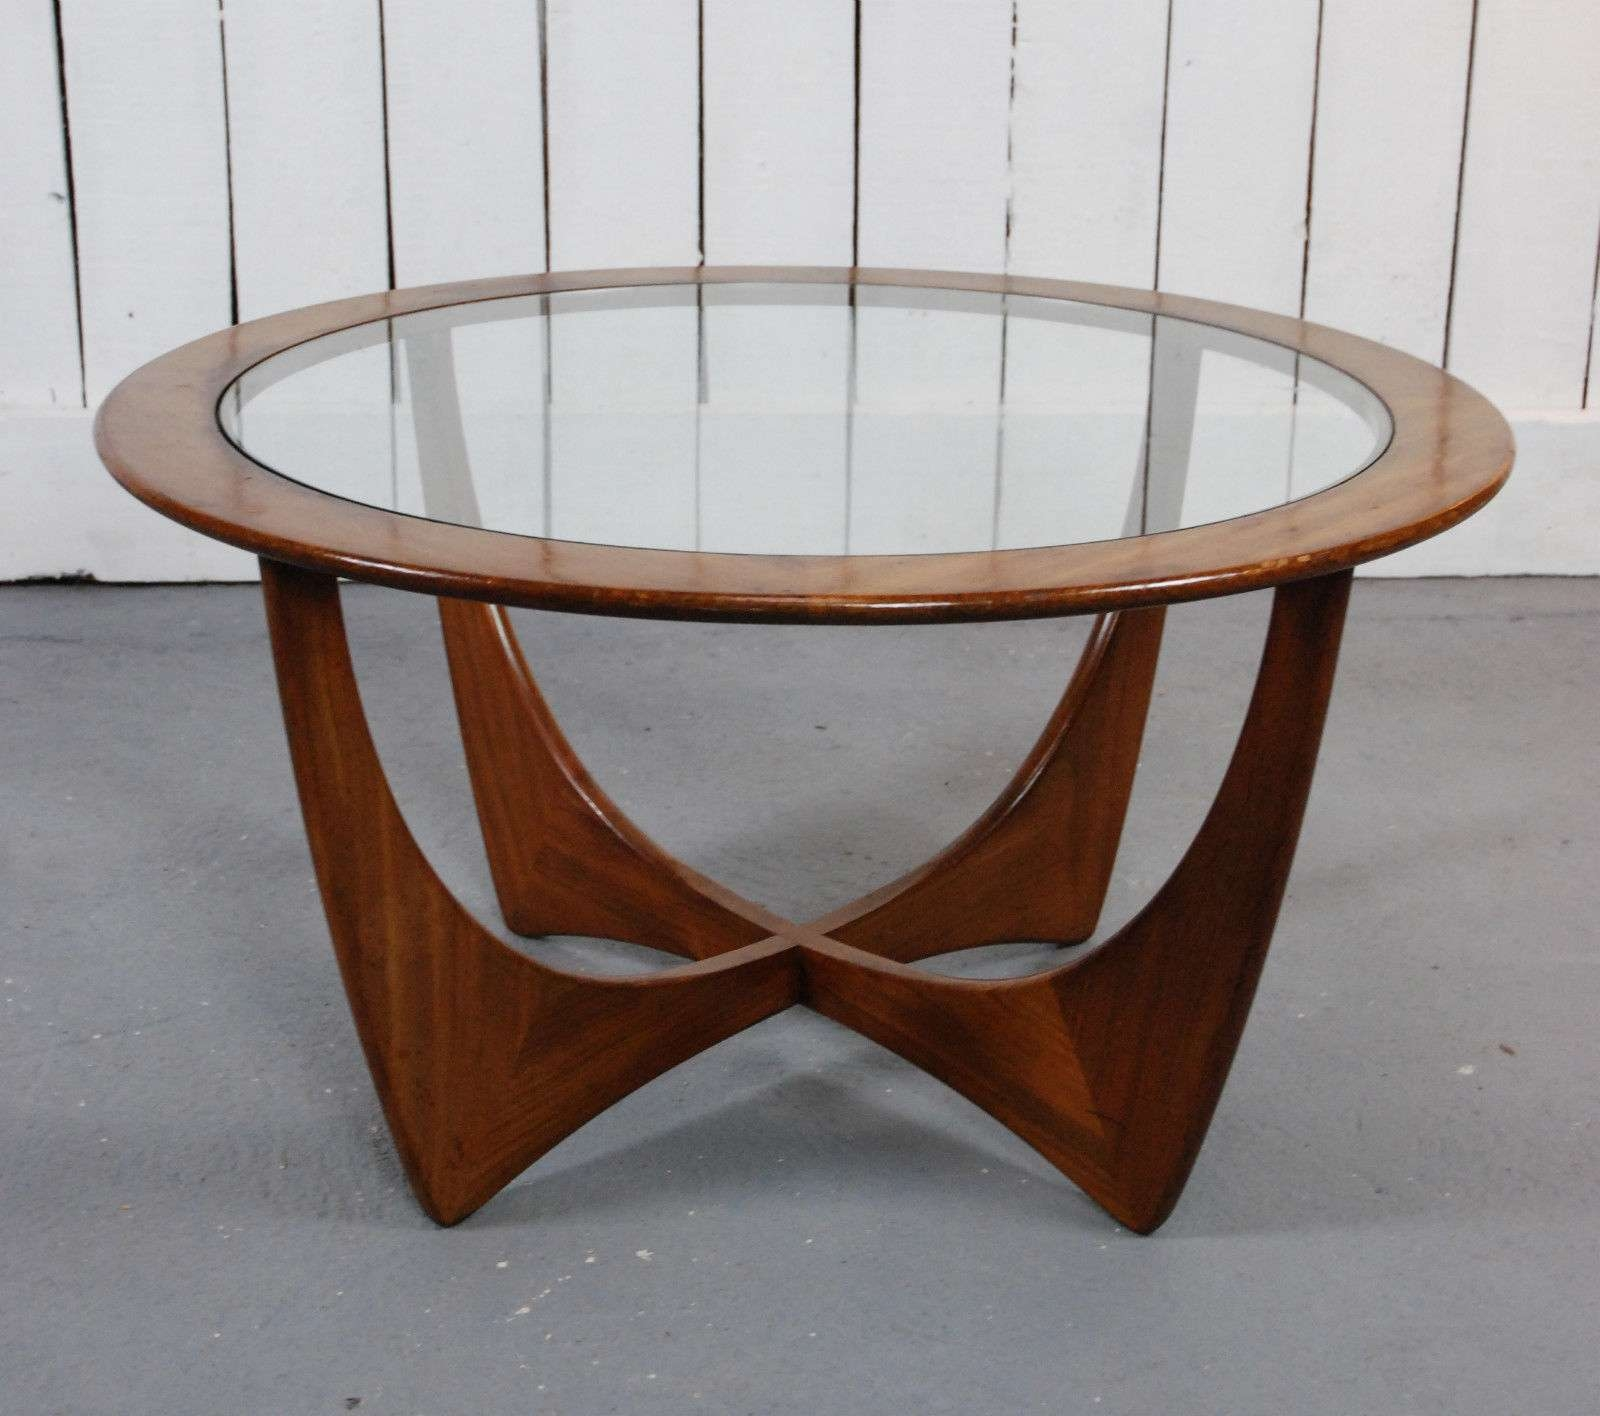 Most Popular Retro Teak Glass Coffee Tables Within Modern Teak Round Coffee Table — New Home Design : Making Teak (View 2 of 20)